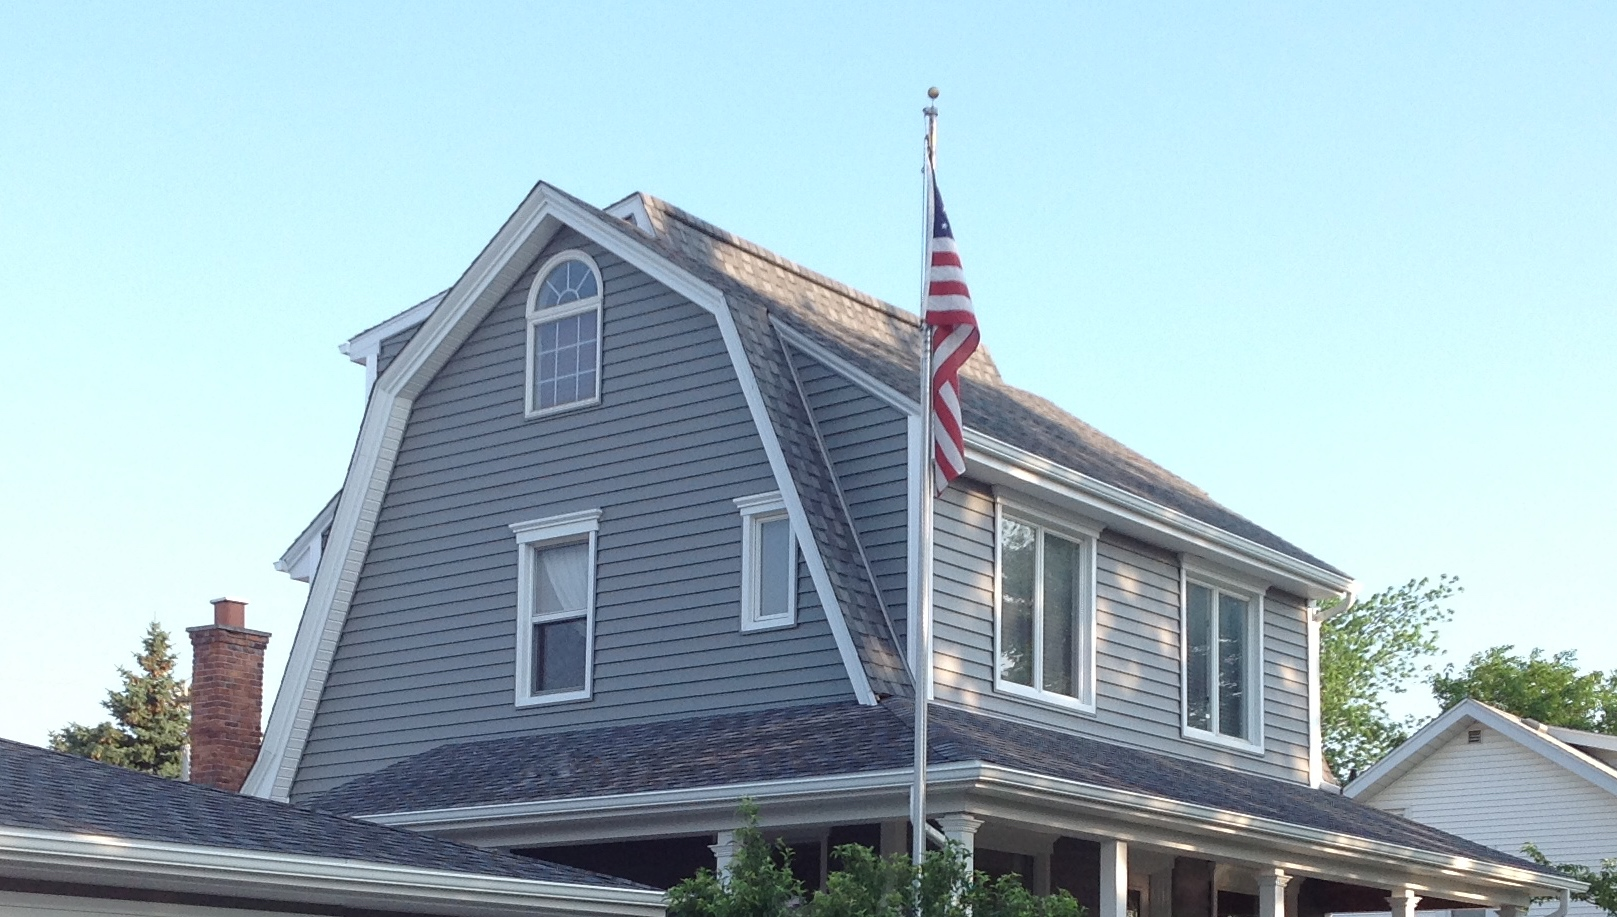 Roofing And Home Improvements Mcm Services